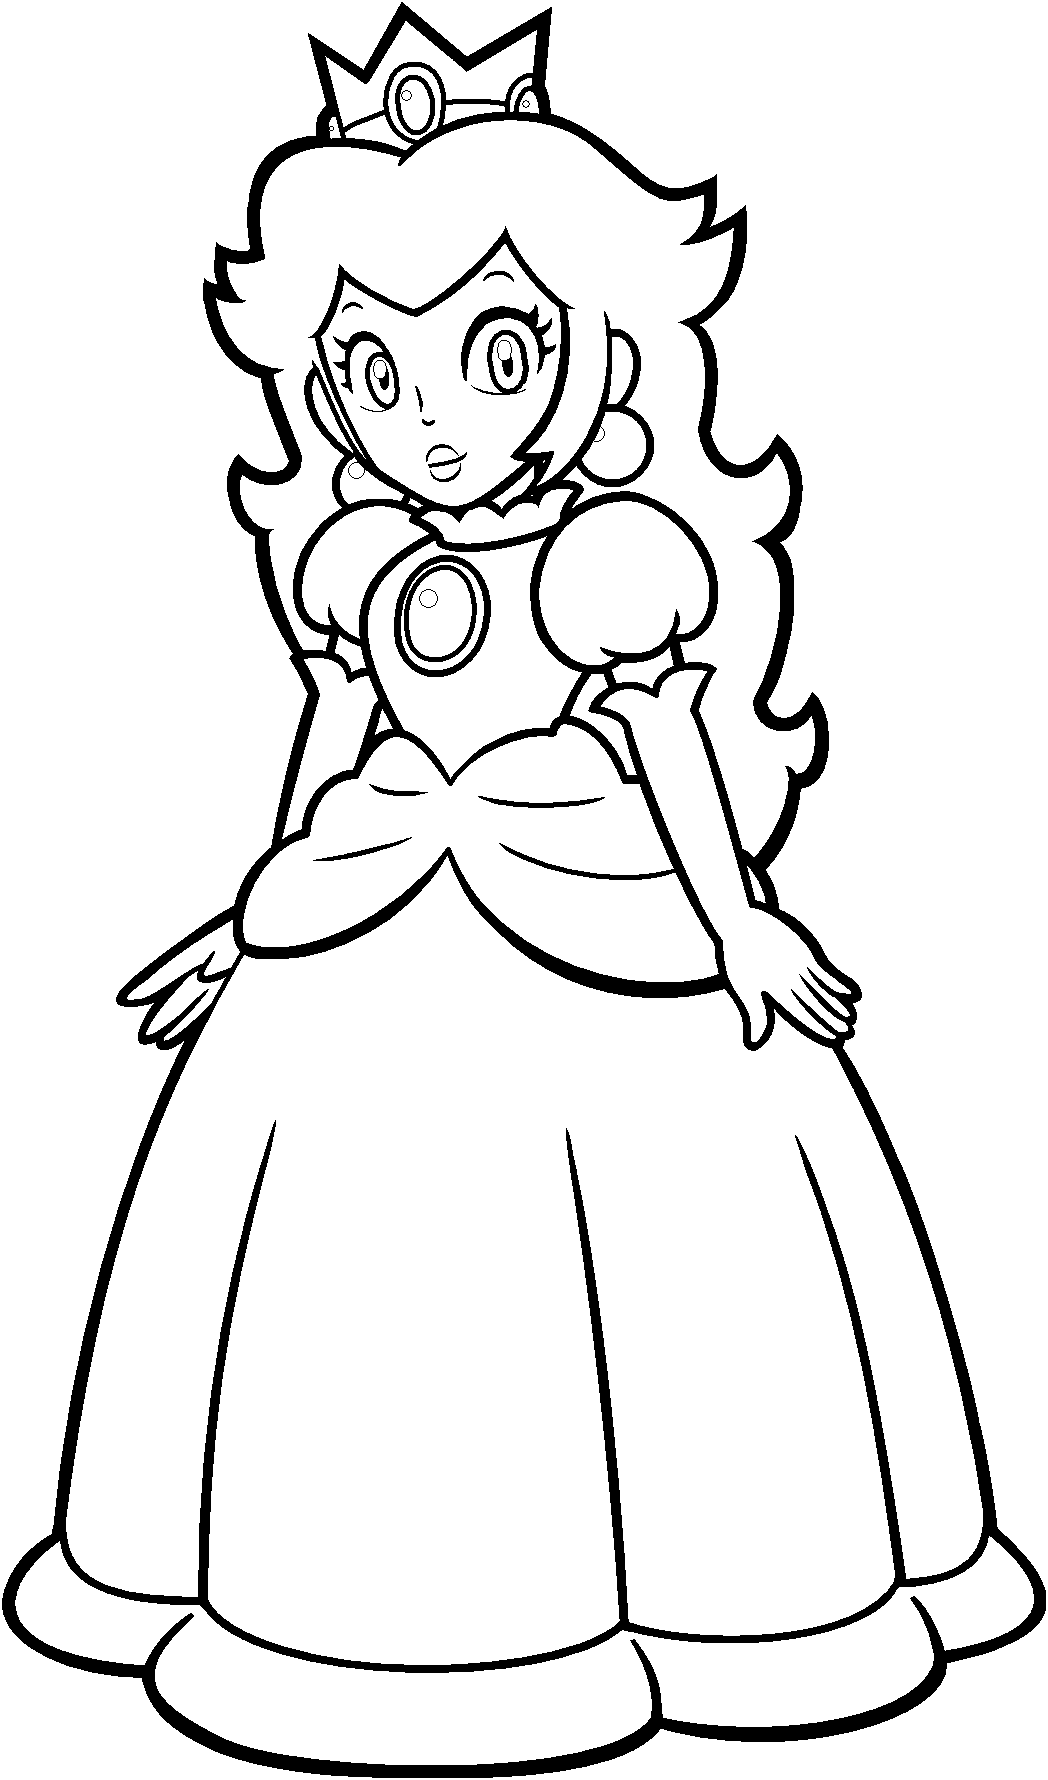 Free Princess Peach Coloring Pages For Kids Princess Coloring Pages Princess Coloring Cartoon Coloring Pages